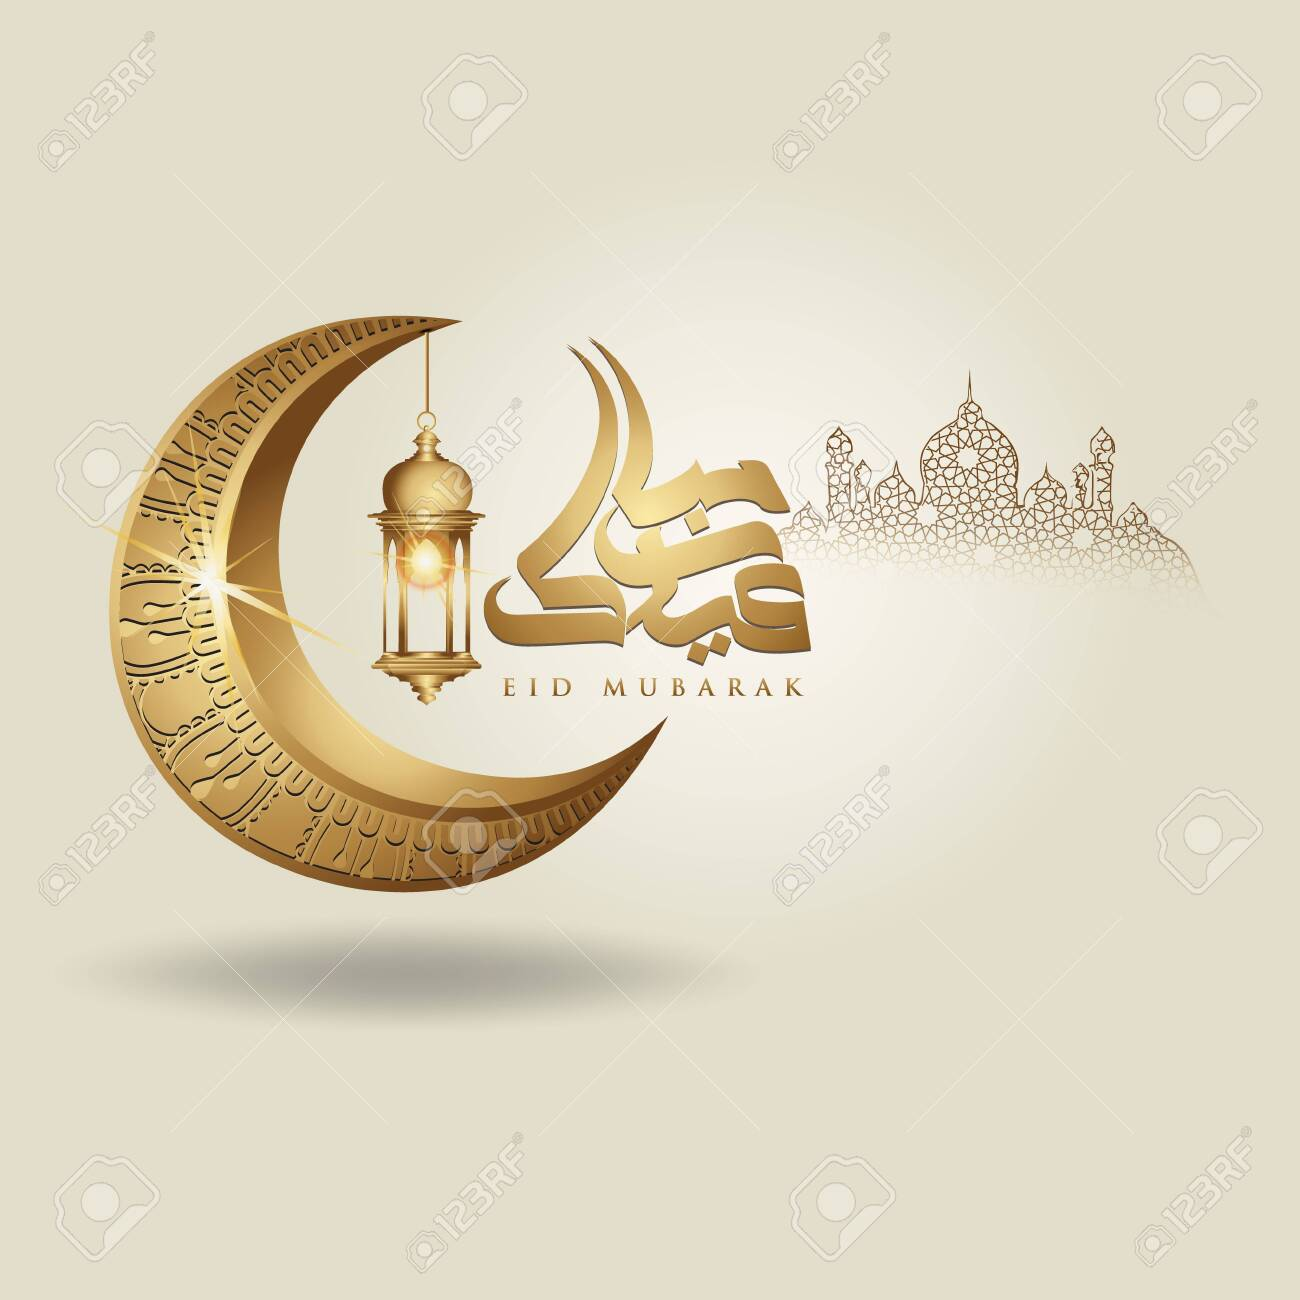 Eid Mubarak islamic design crescent moon, traditional lantern and arabic calligraphy, template islamic ornate greeting card vector for publication event - 122203094